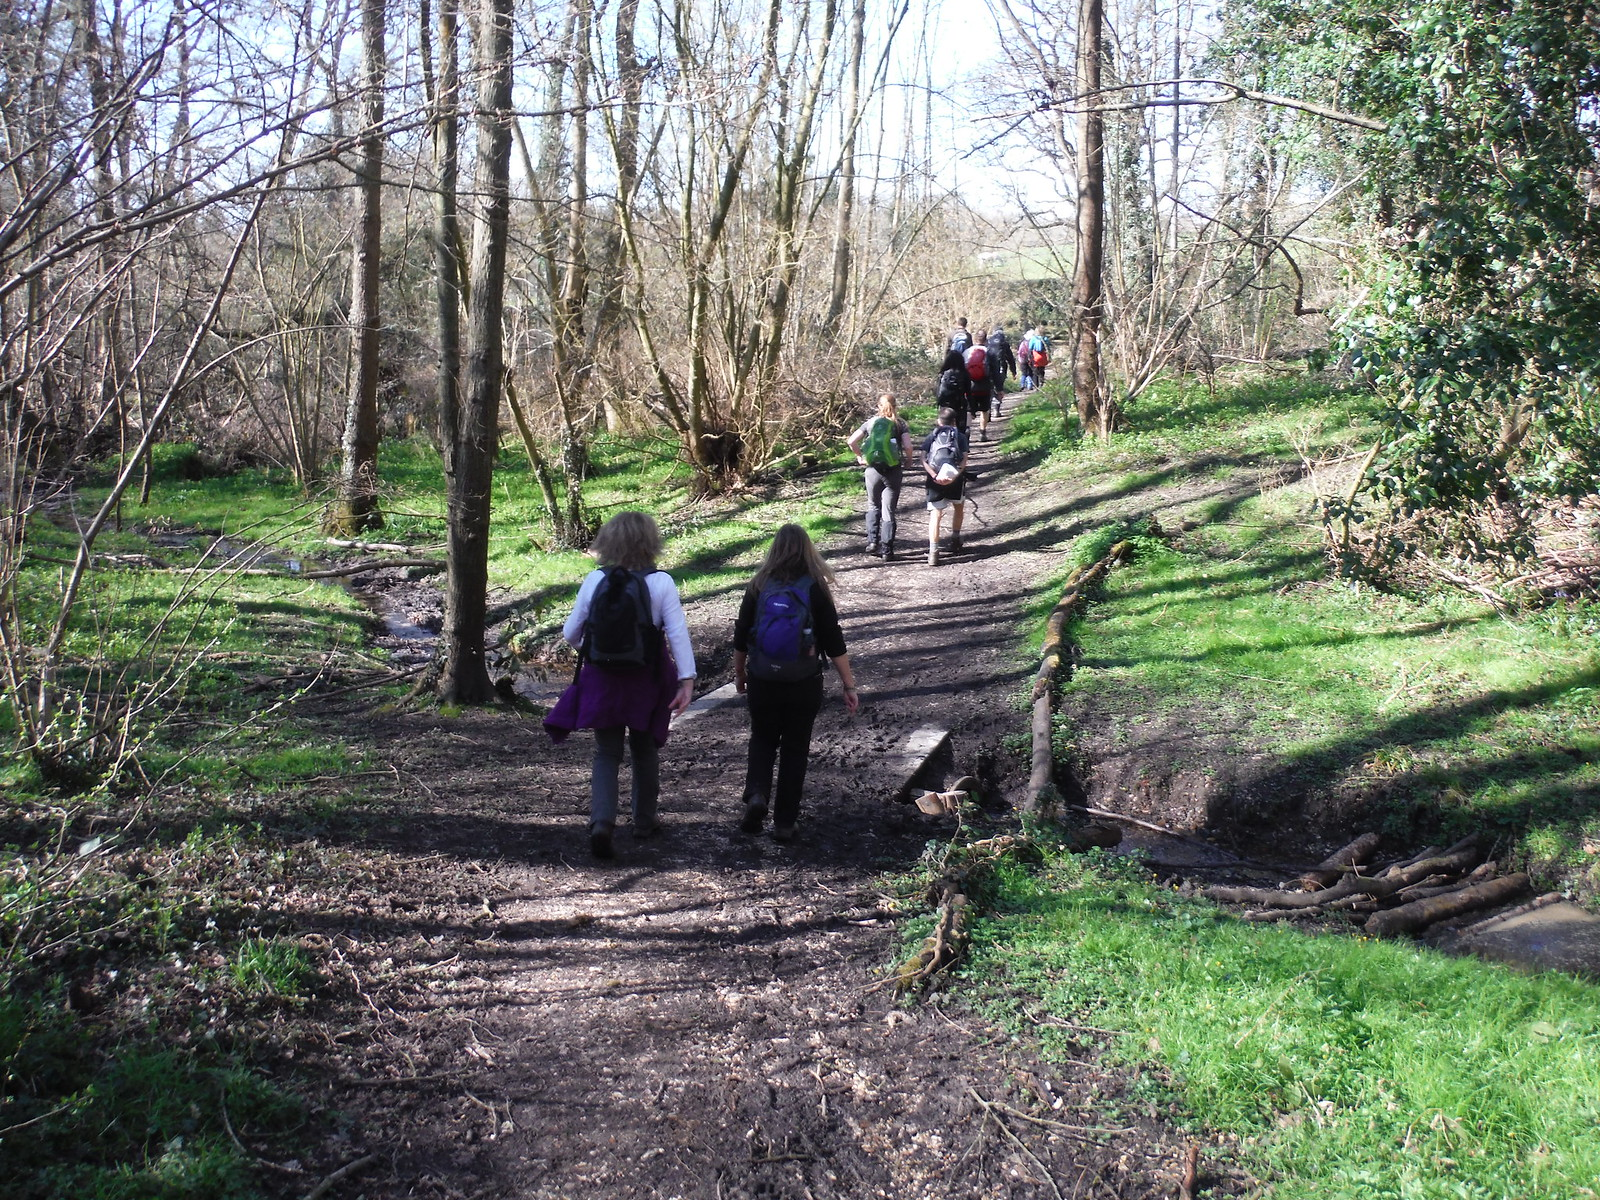 Through Old Copse, Beenham SWC Walk 260 Aldermaston to Woolhampton [Midgham Station] (via Frilsham)